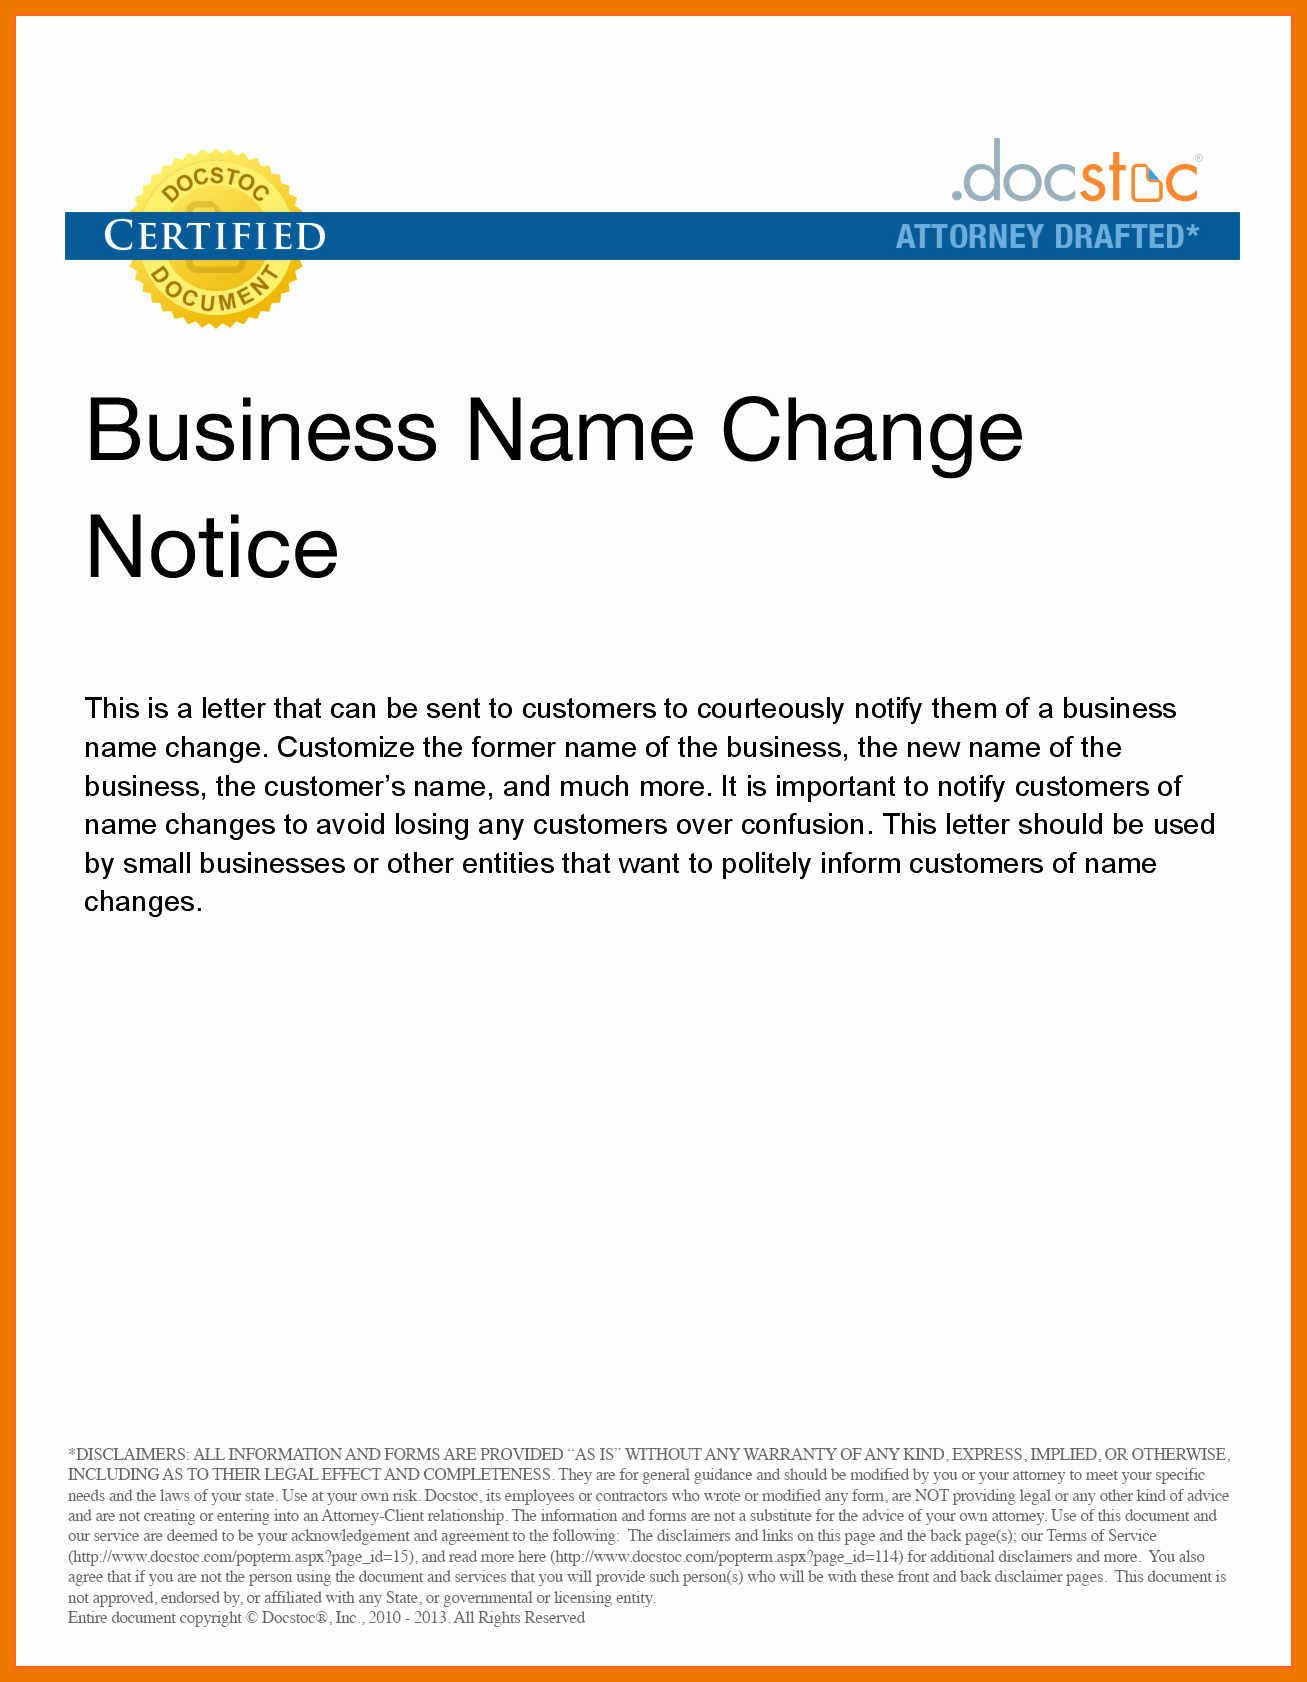 Change Of Ownership Letter 9 10 New Ownership Letter to Customers